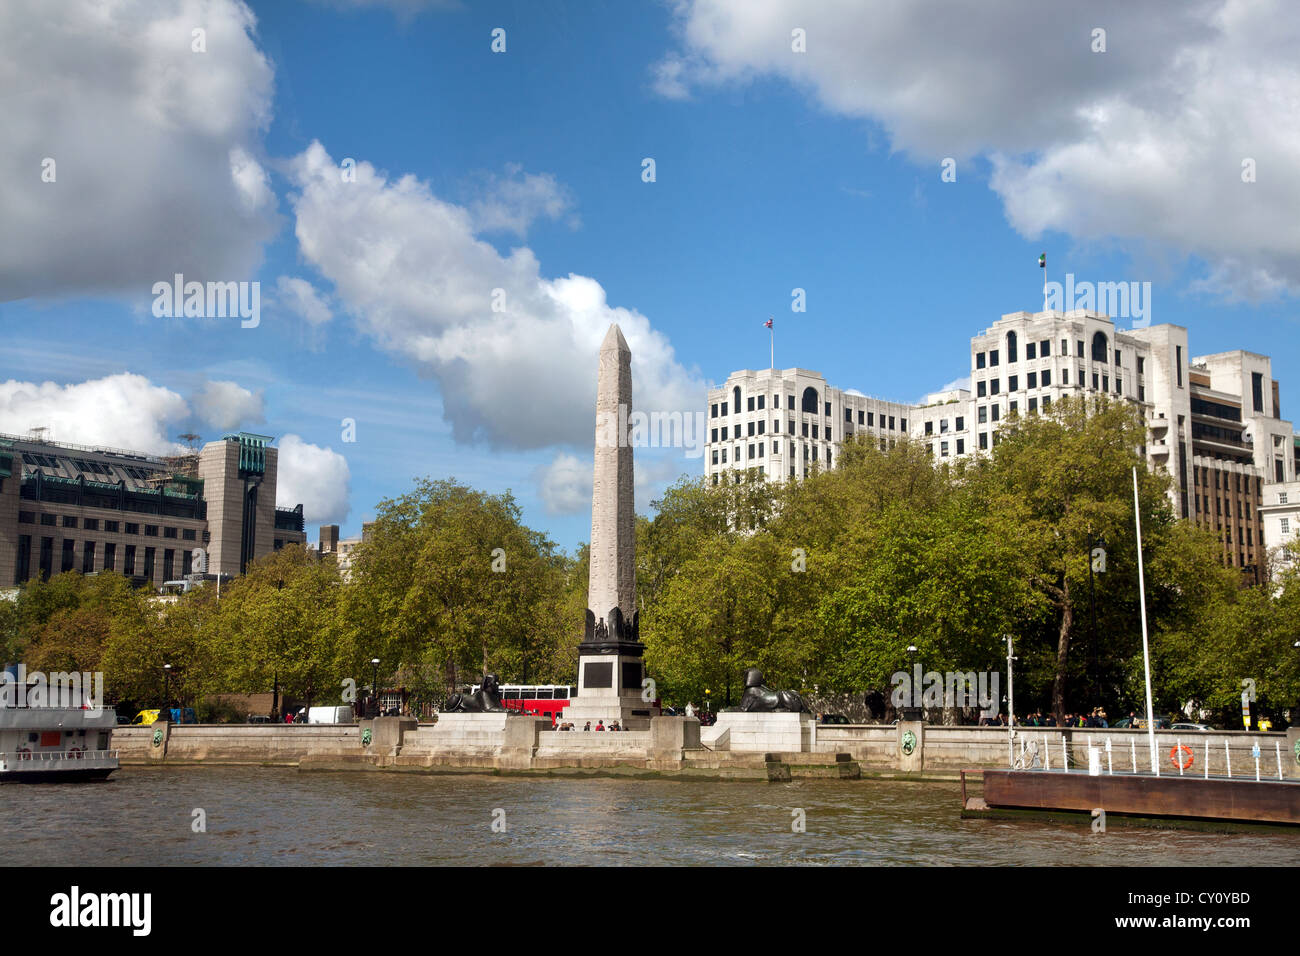 England. London. River Thames Embankment. Westminster. Cleopatra's Needle. - Stock Image